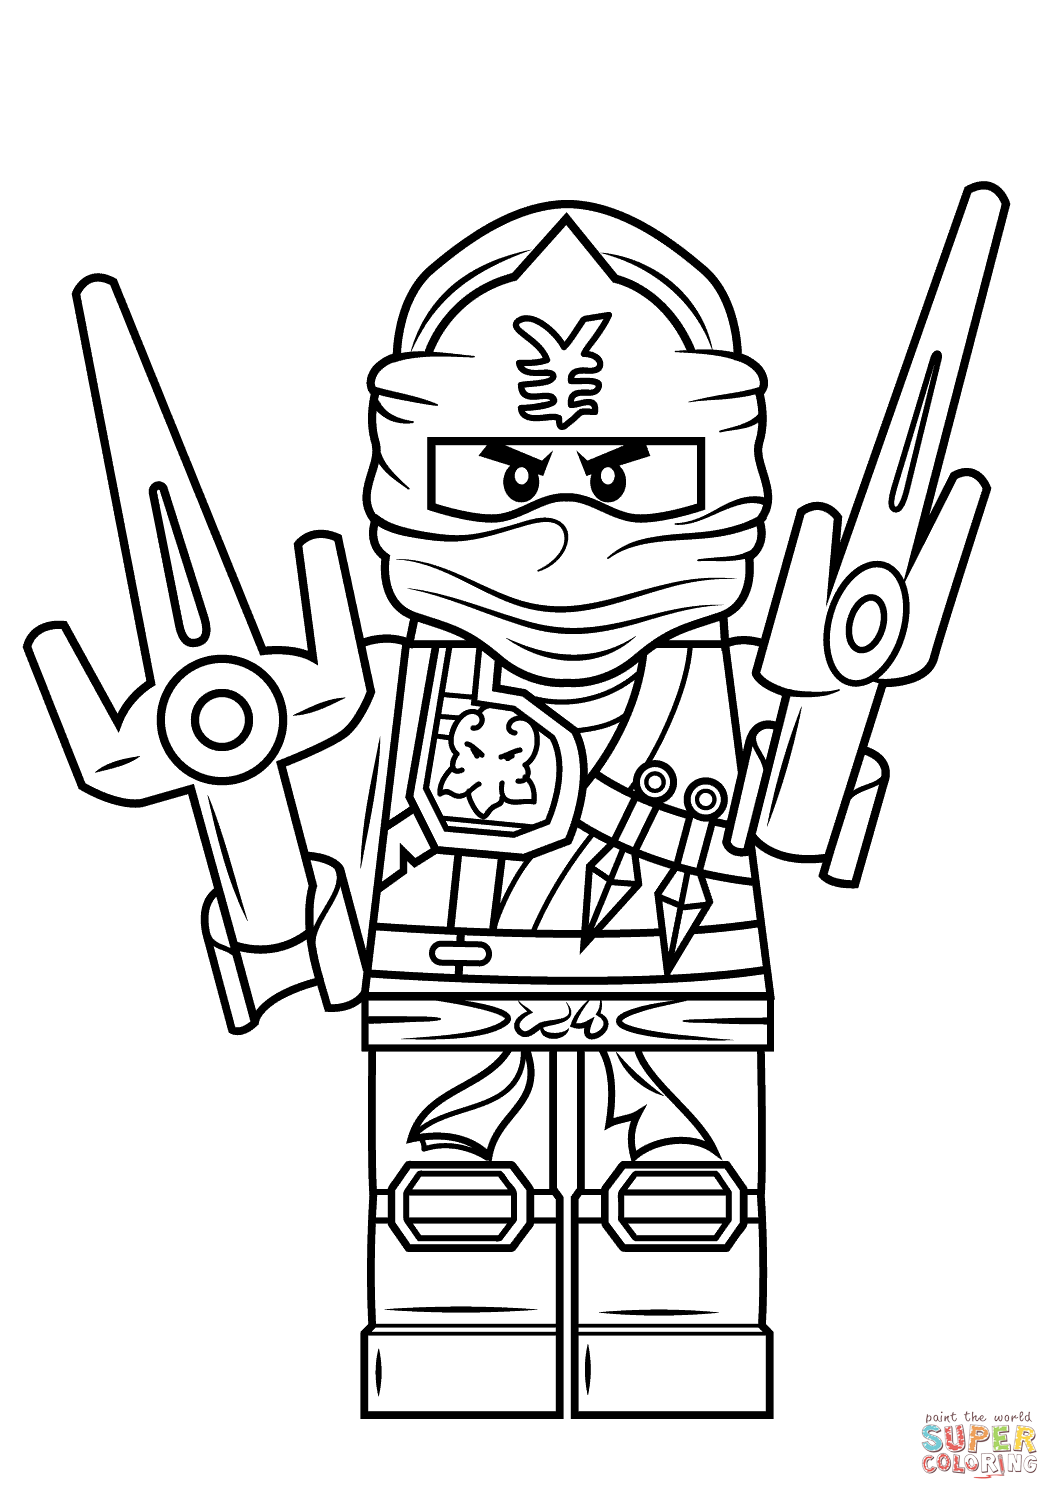 Lego ninjago drawing at free for personal use lego ninjago drawing of your choice - Lego ninjago a colorier ...